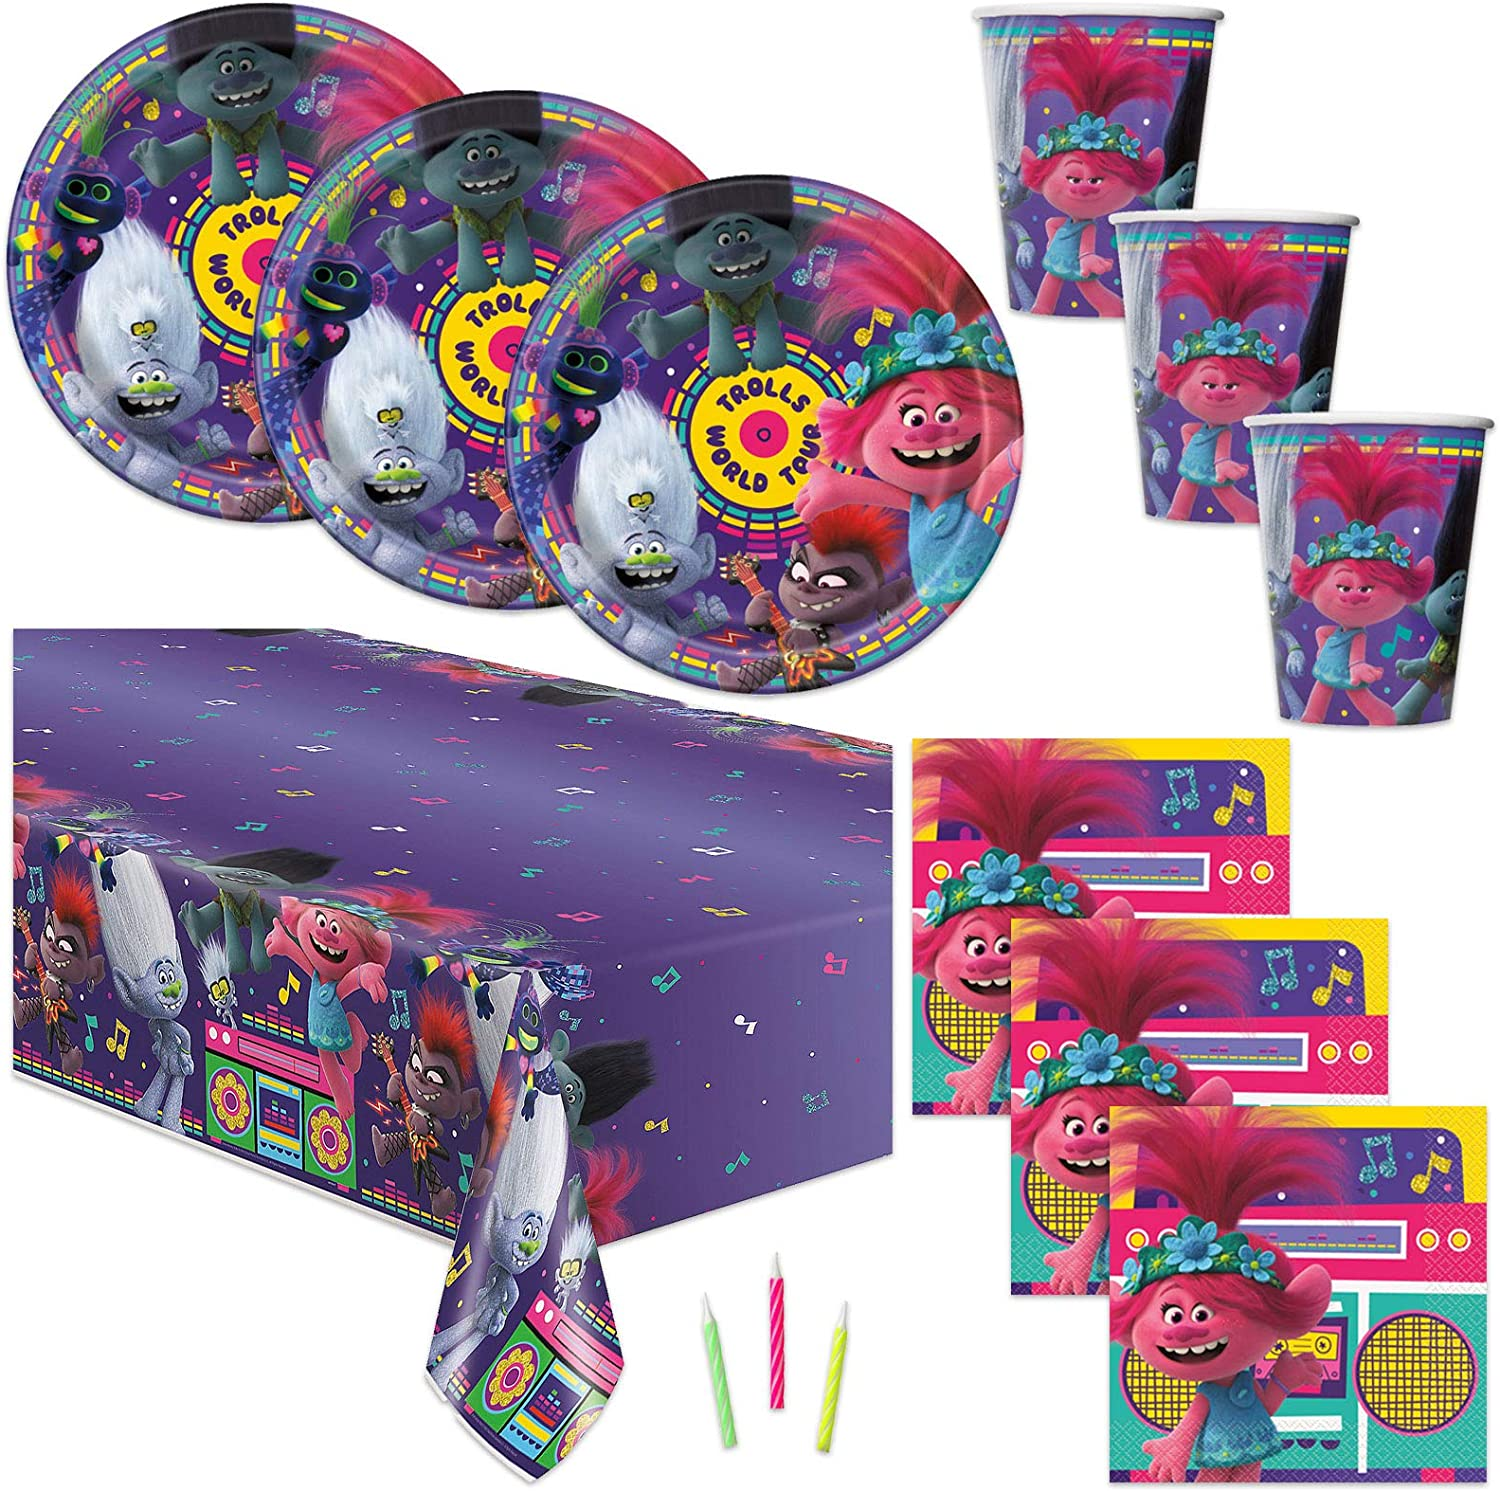 Trolls Theme Birthday Party Supplies - Serves 16 - Tablecover, Plates, Cups, Napkins, Candles